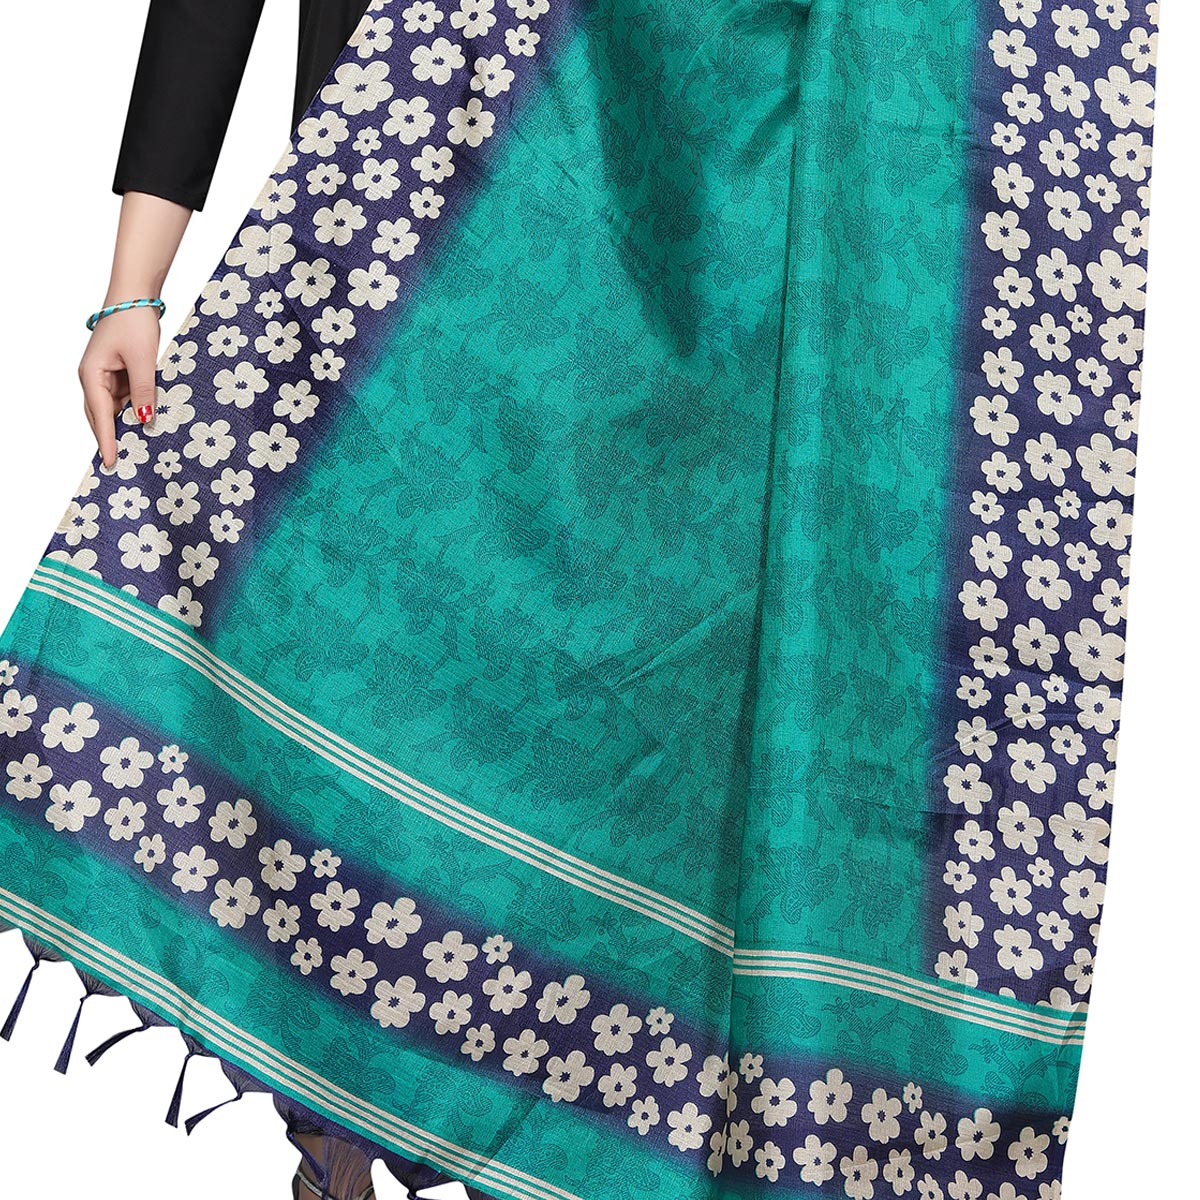 Amazing Rama Green Colored Festive Wear Printed Khadi Silk Dupatta